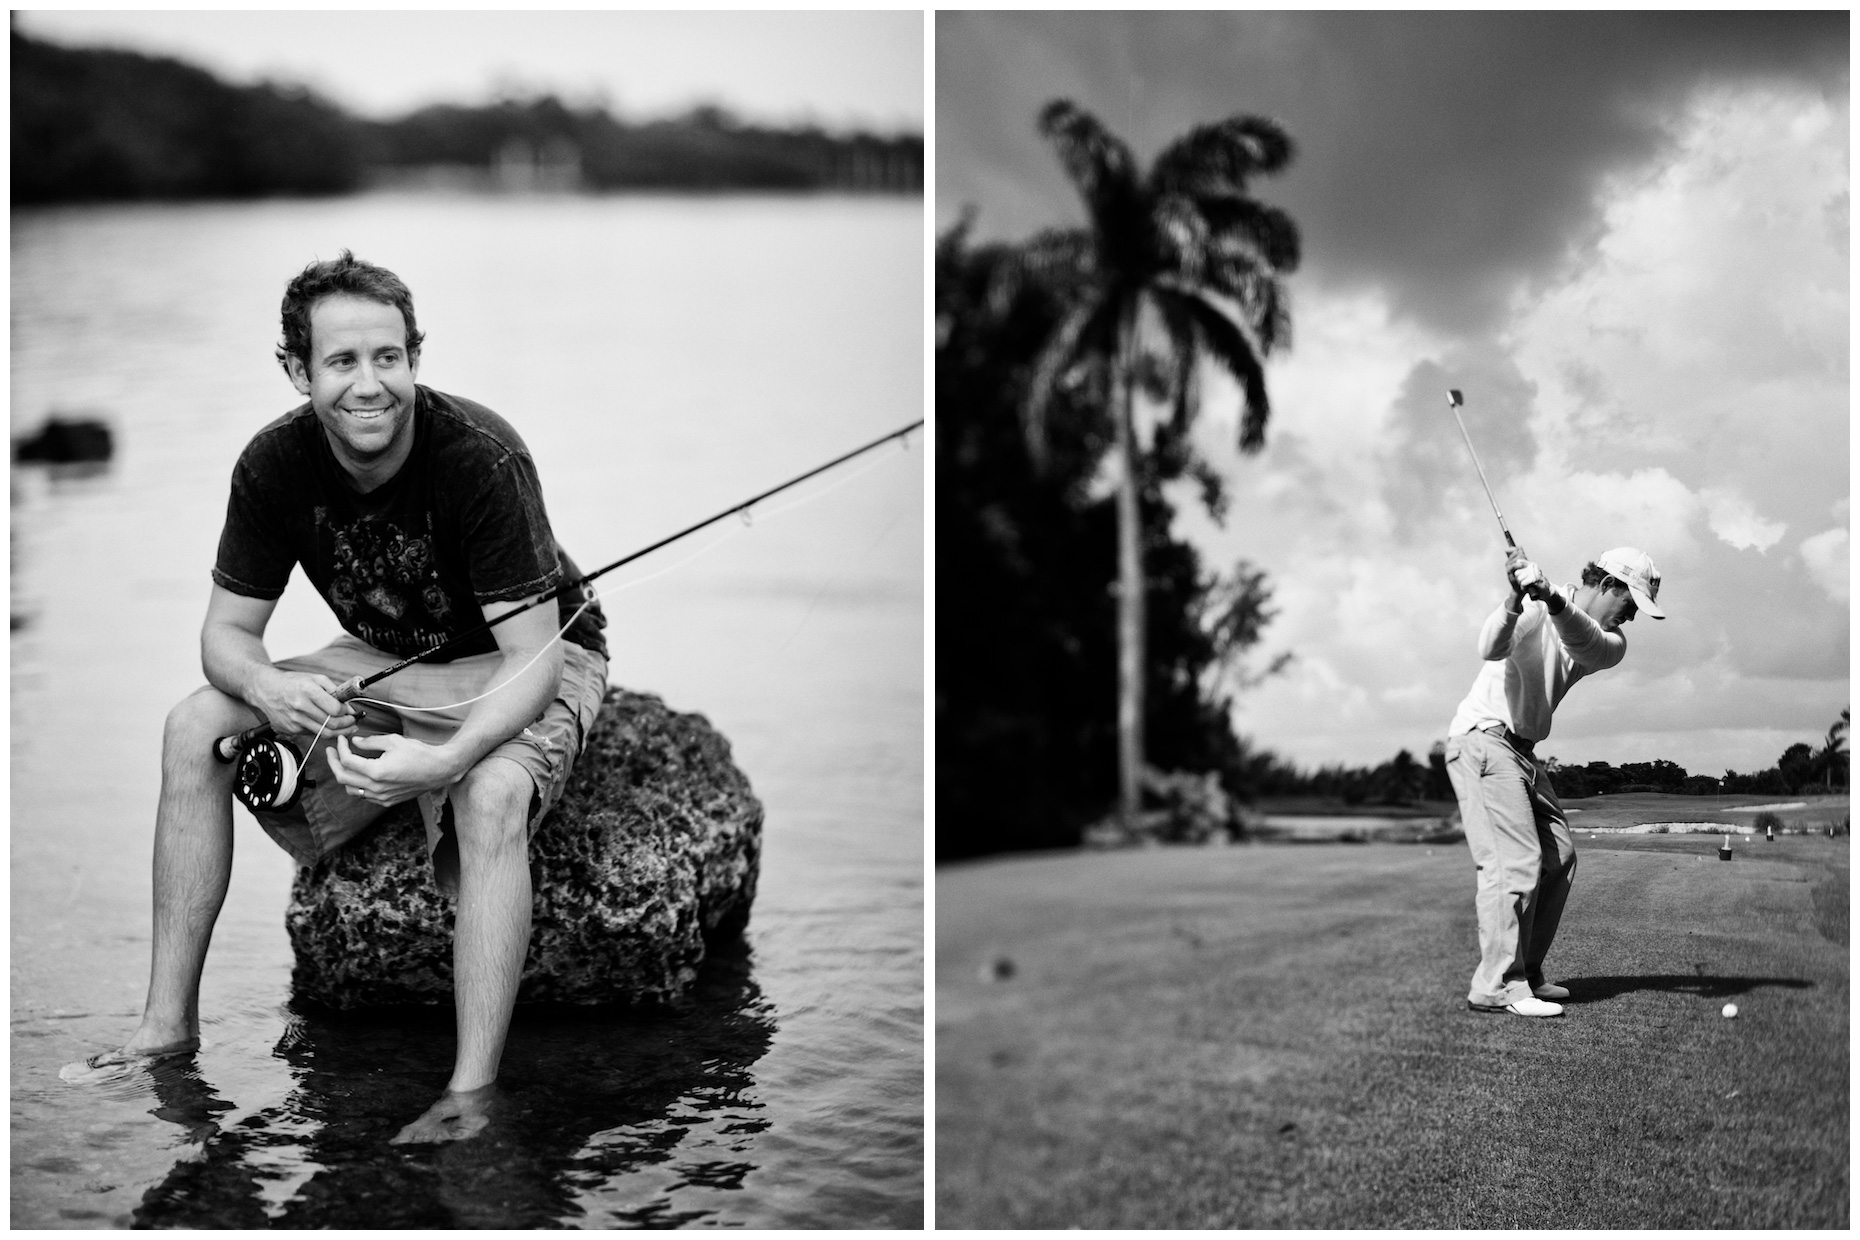 Erik Compton, photographed in Miami, Florida for Golf World magazine.